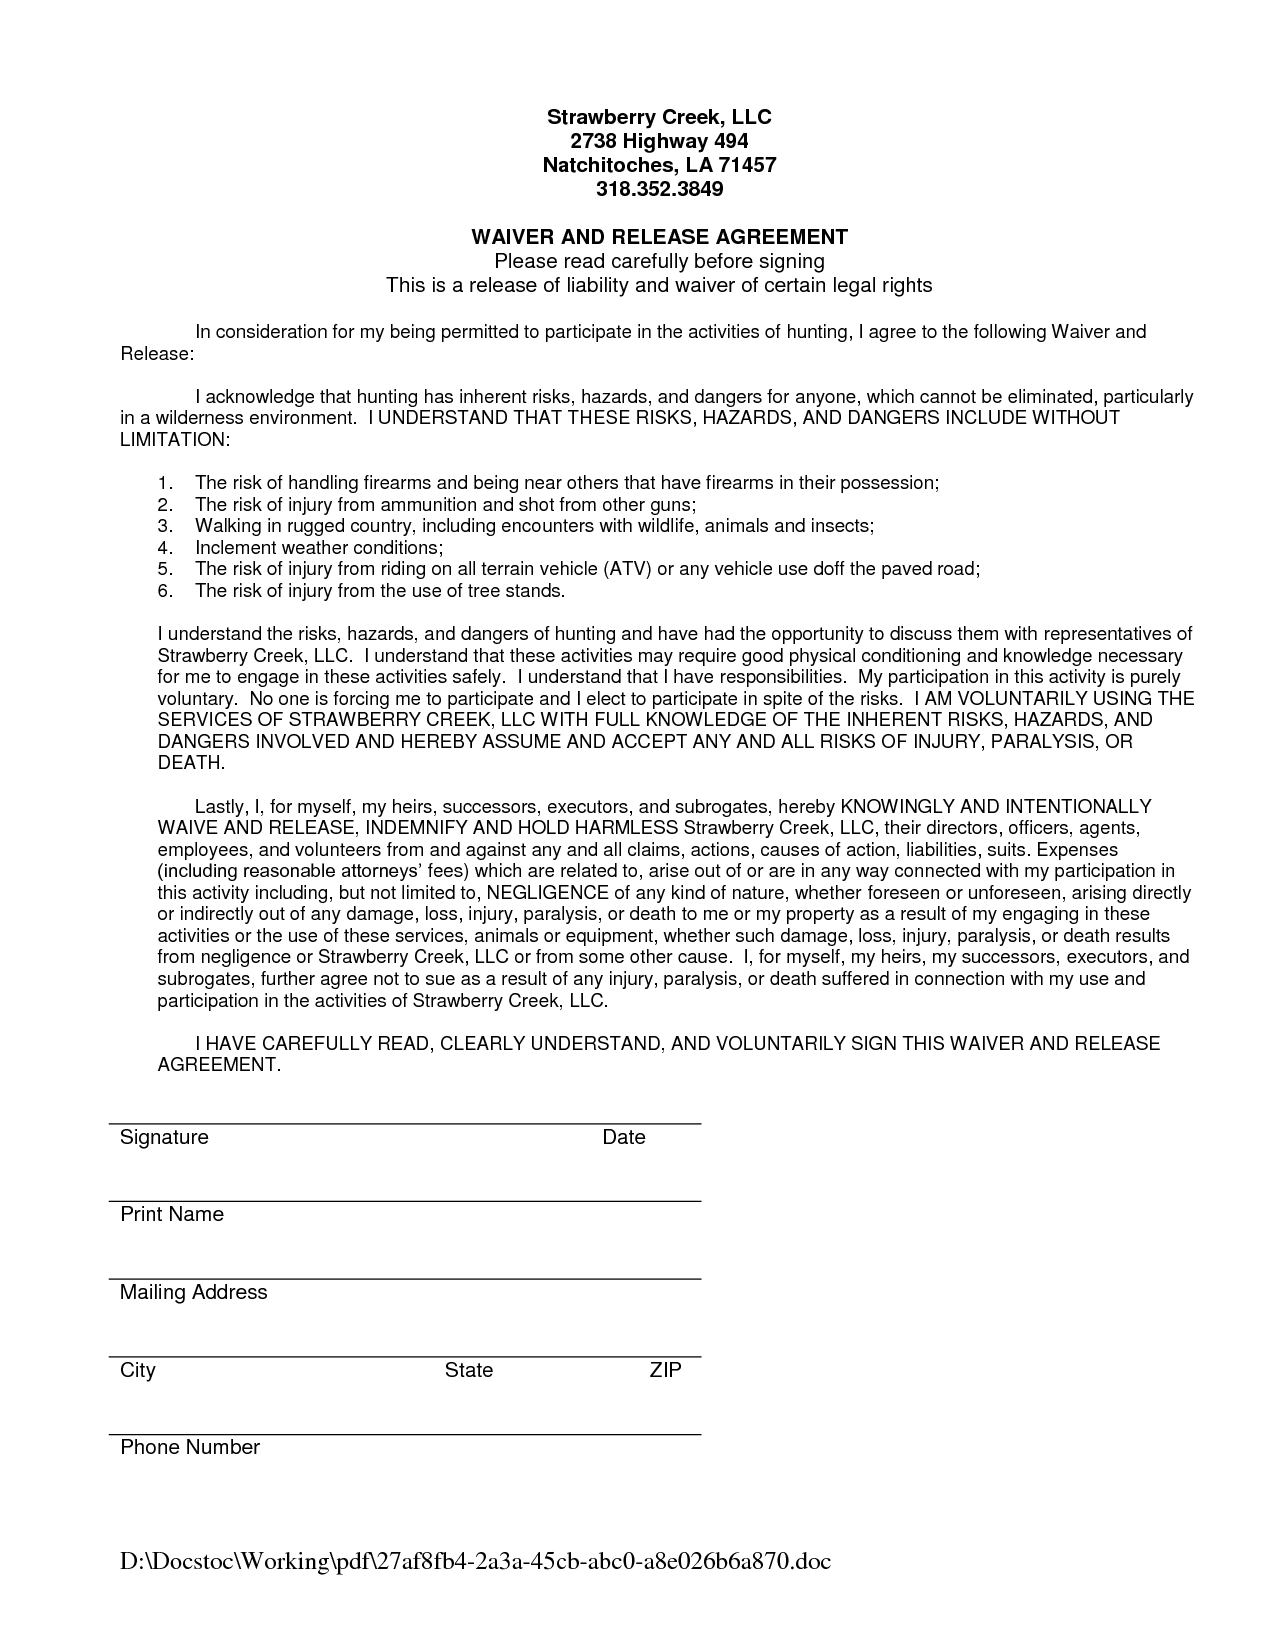 Explore Templates Free, Free Printable, And More! Waiver And Release Of Liability  Form ...  Free Printable Liability Release Form